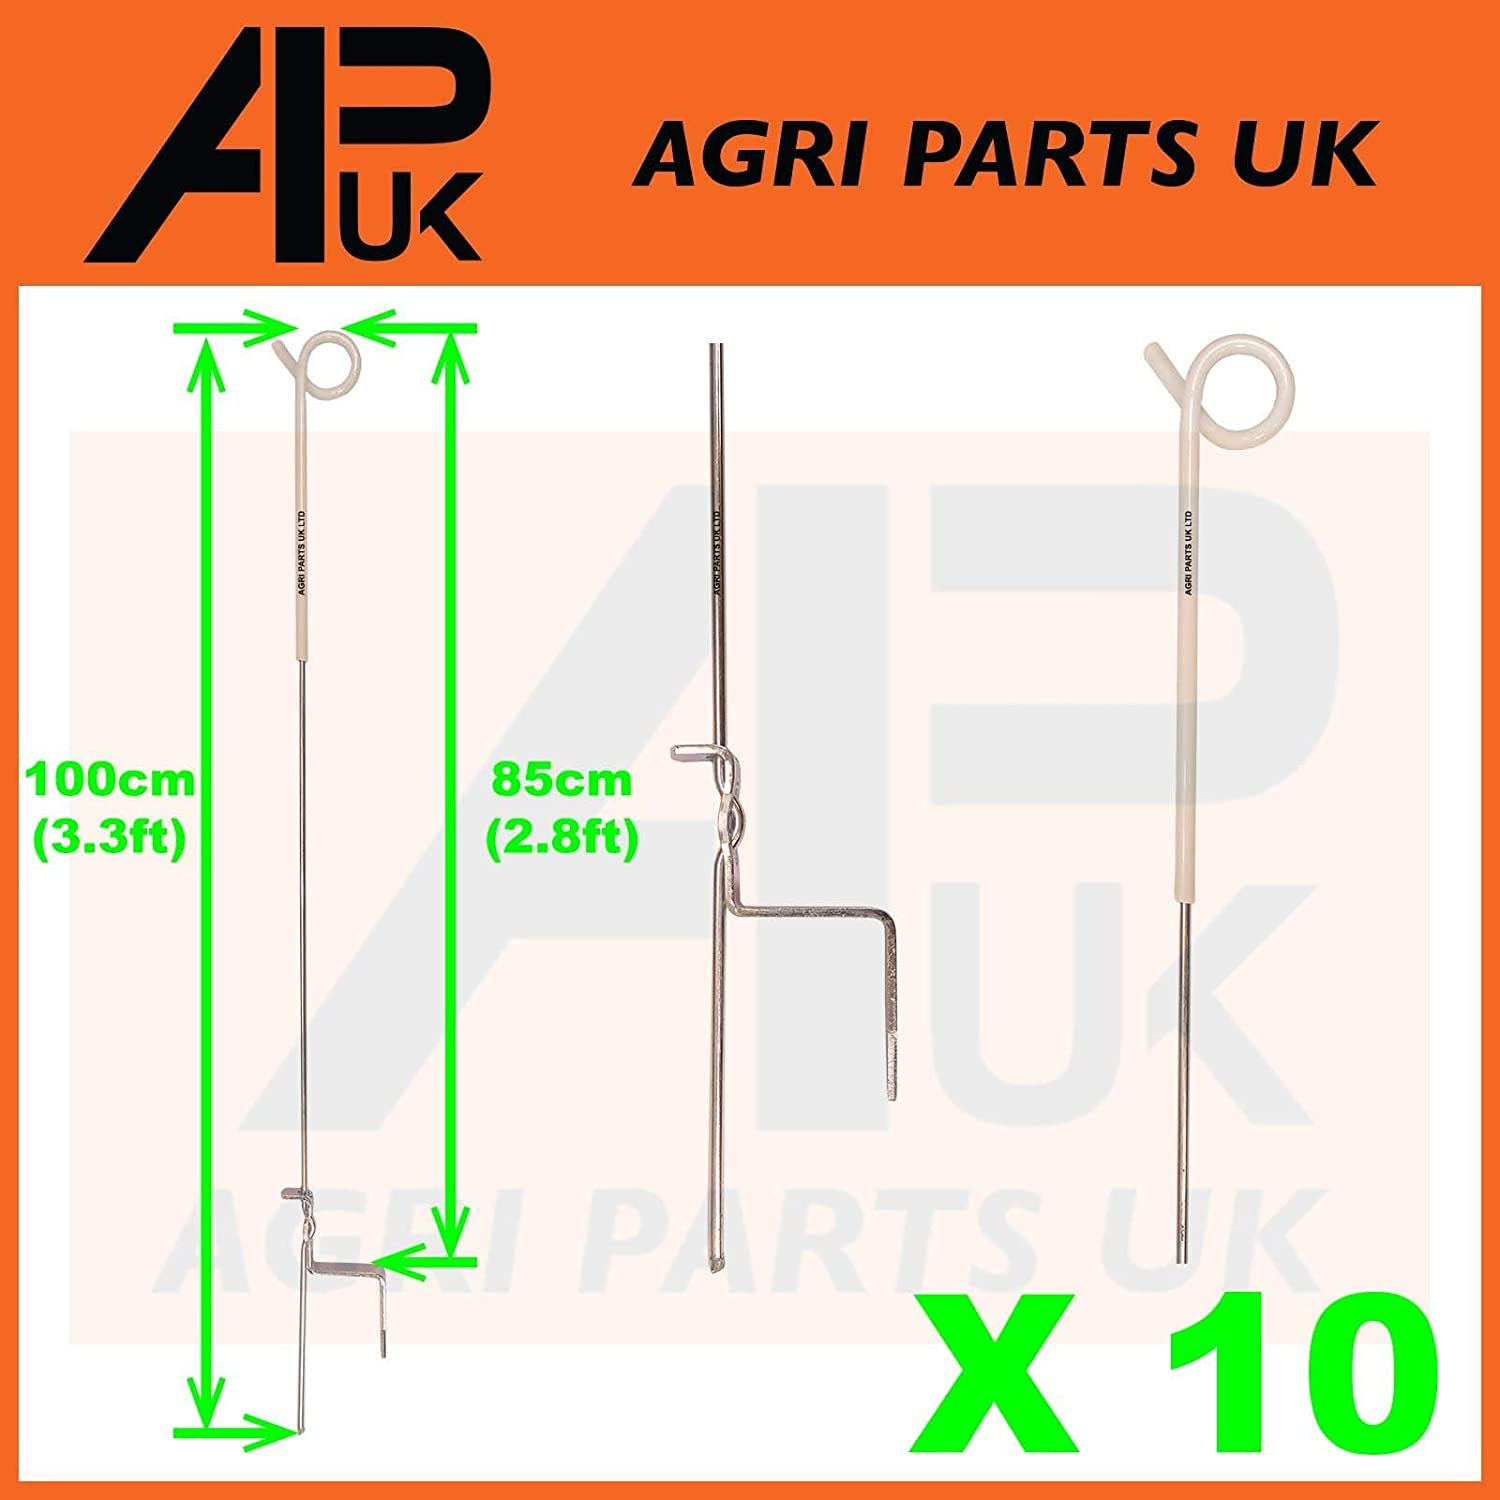 APUK 10x Electric Fence Pigtail Posts Stakes Steel 3ft Poly wire rope tape Insulators Agri Parts UK Ltd